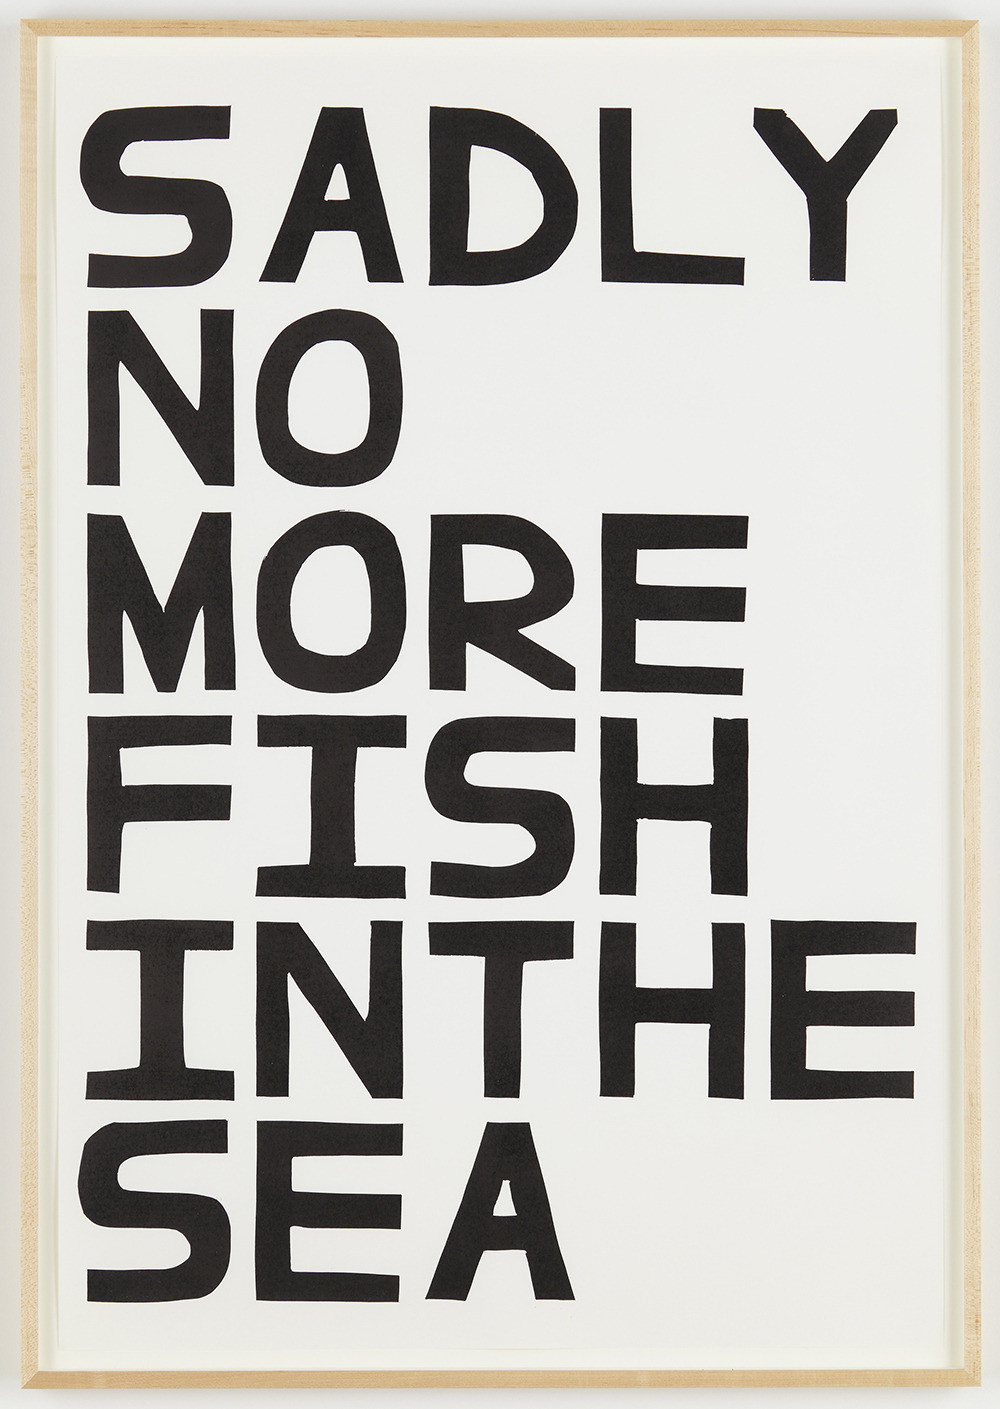 David Shrigley, Sadly No More Fish in the Sea, 2012, Unique linocut print, 41 3/8 x 28 3/8 inches, Courtesy Anton Kern Gallery, New York